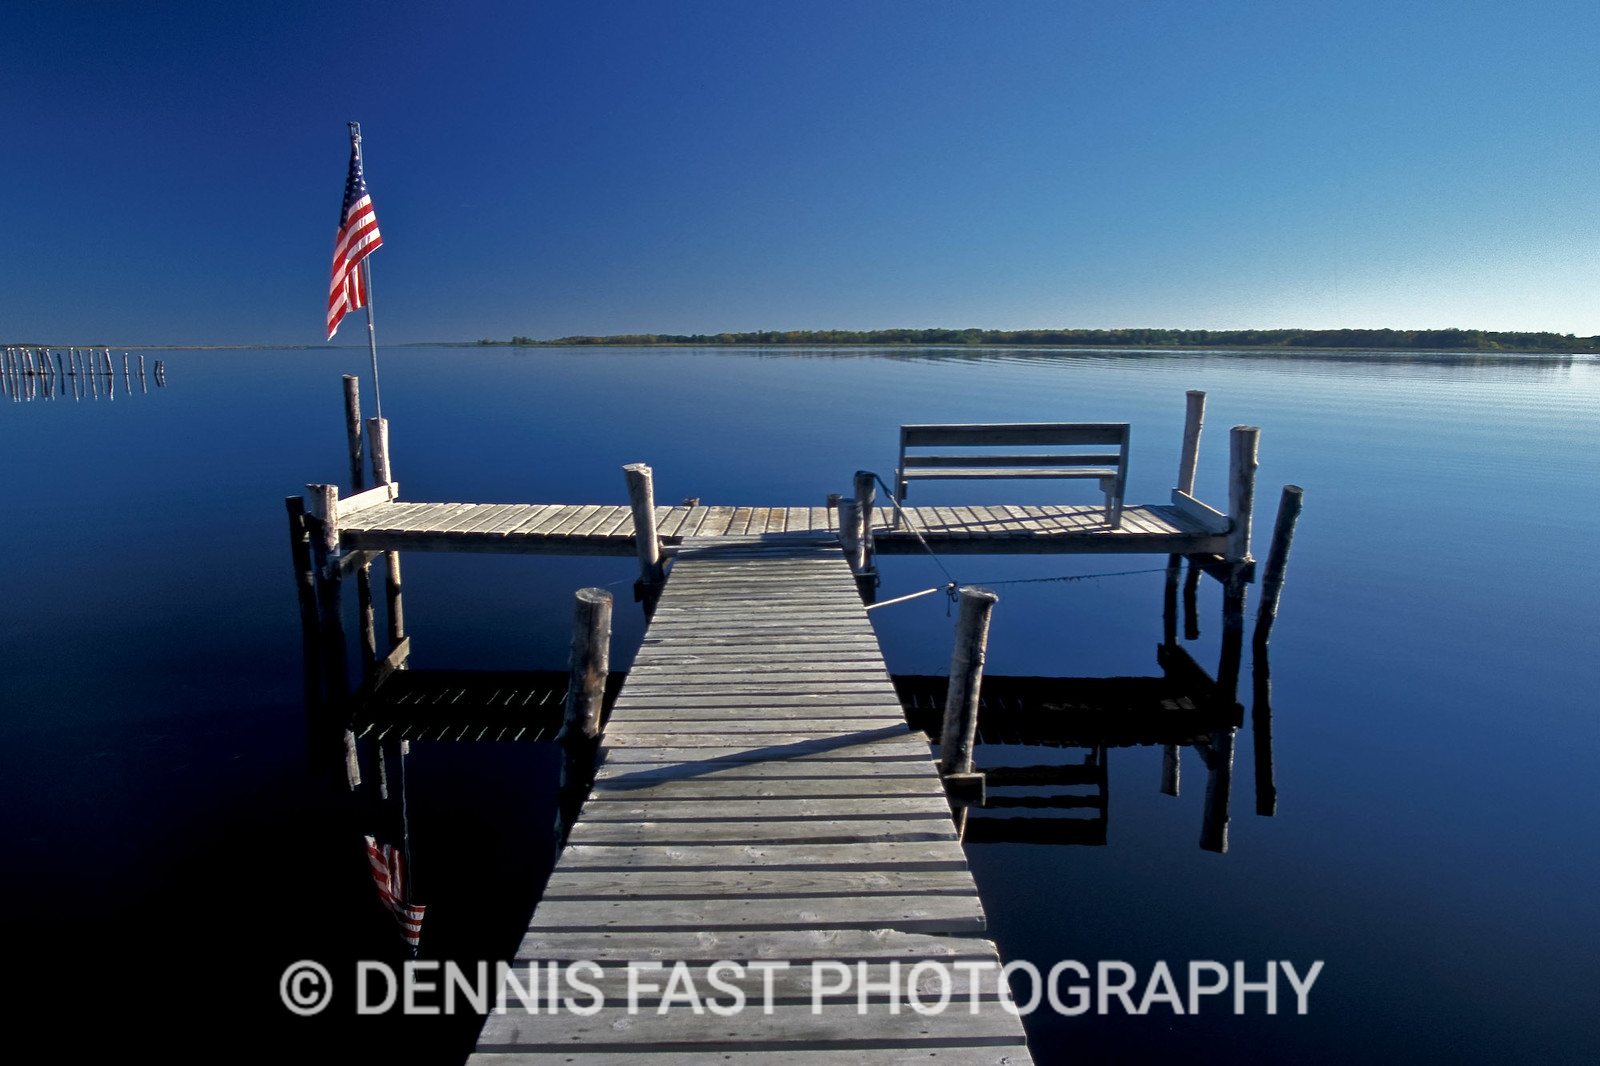 AFTER 911.  I made this image while shooting for a book on Lake of the Woods for Heartland Publishing. I still had the southern part of the lake to photograph (the part that is in Minnesota) when the terrible tragedy of 9/11 happened. I waited for a few days before heading out and came across this quiet, and somewhat somber scene at the time, near a small fishing camp. I felt both serenity and sadness as I took this photo knowing that the USA and the world had changed forever.